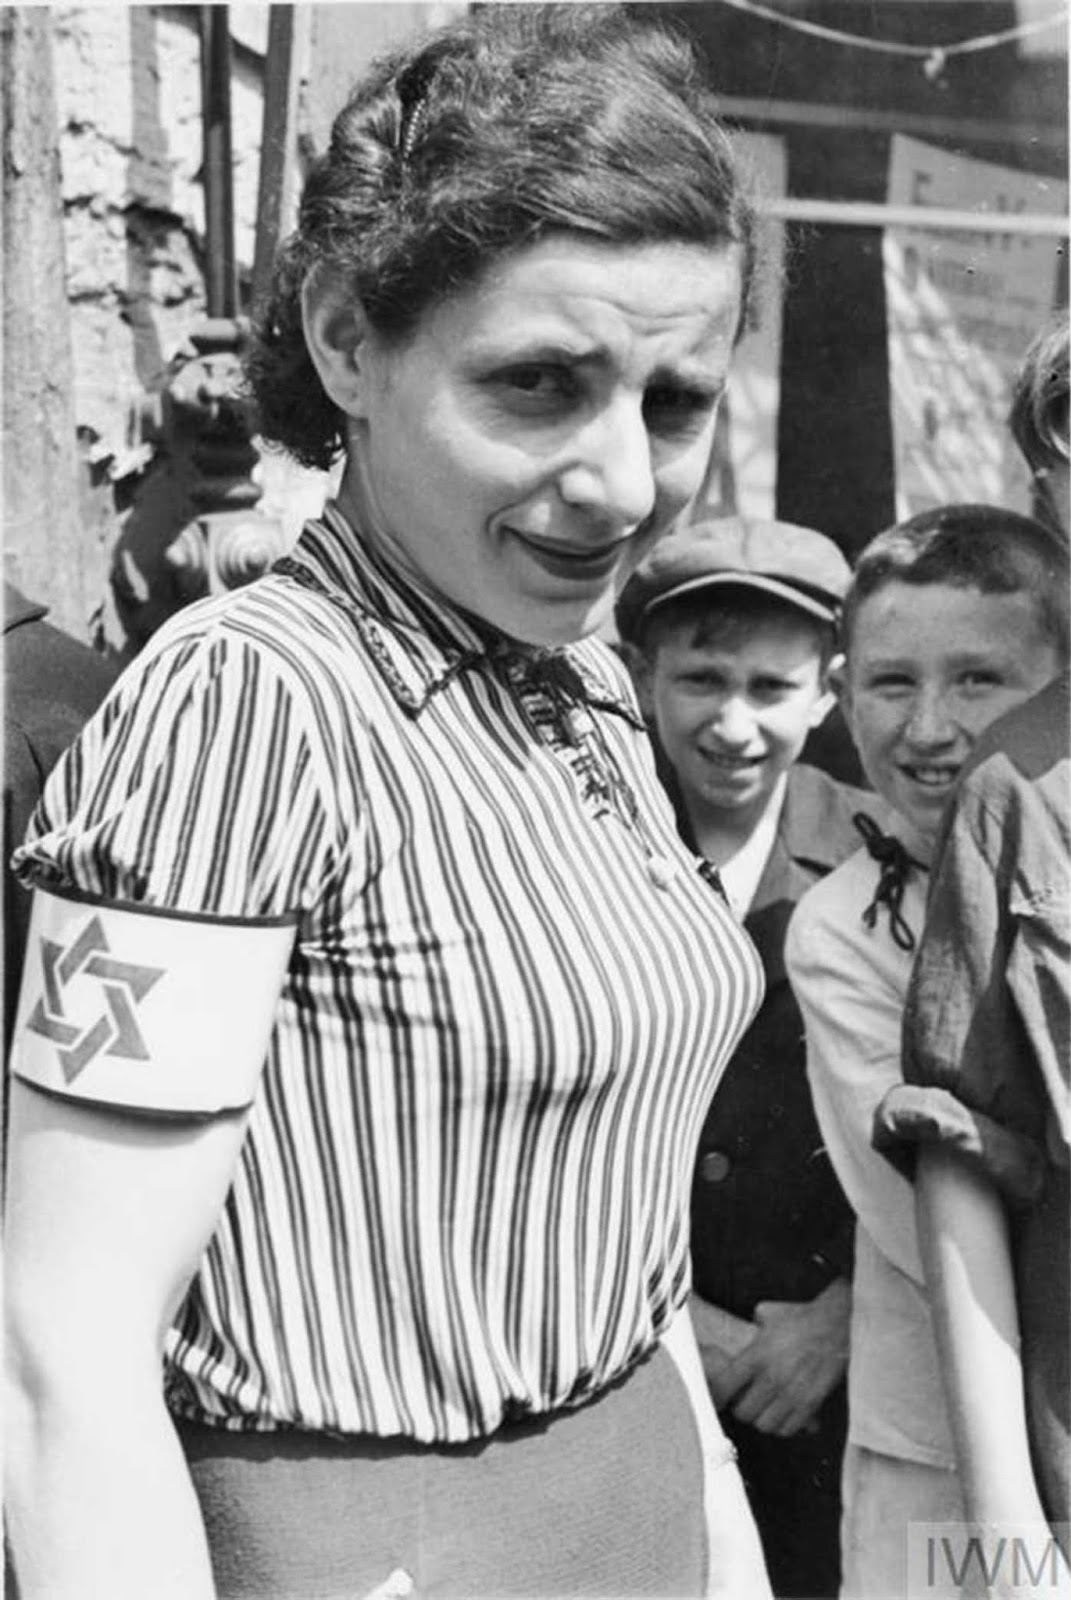 A portrait of a young woman wearing a striped blouse and an armband with the Star of David.